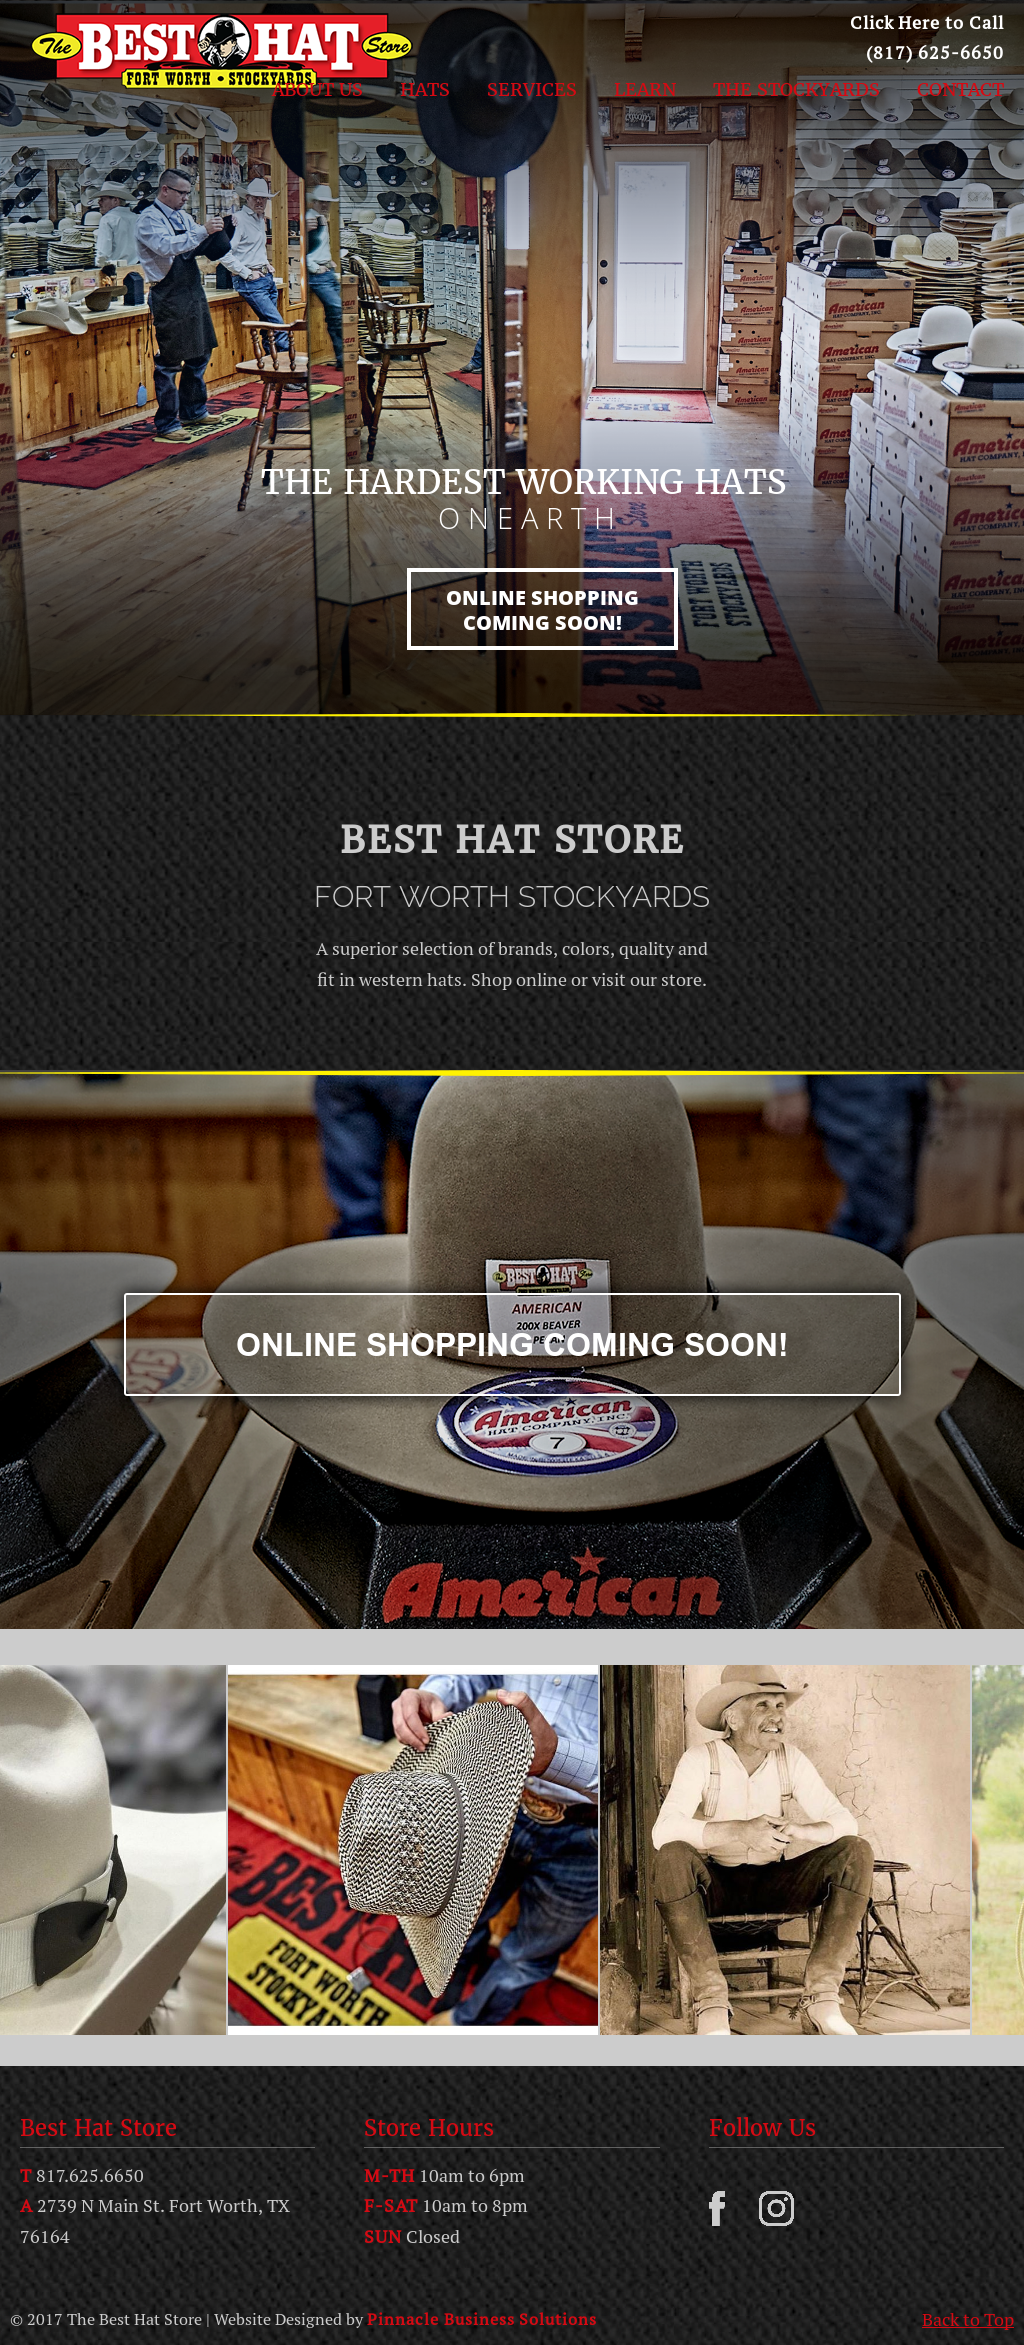 ad08b468caf The Best Hat Store Competitors, Revenue and Employees - Owler ...